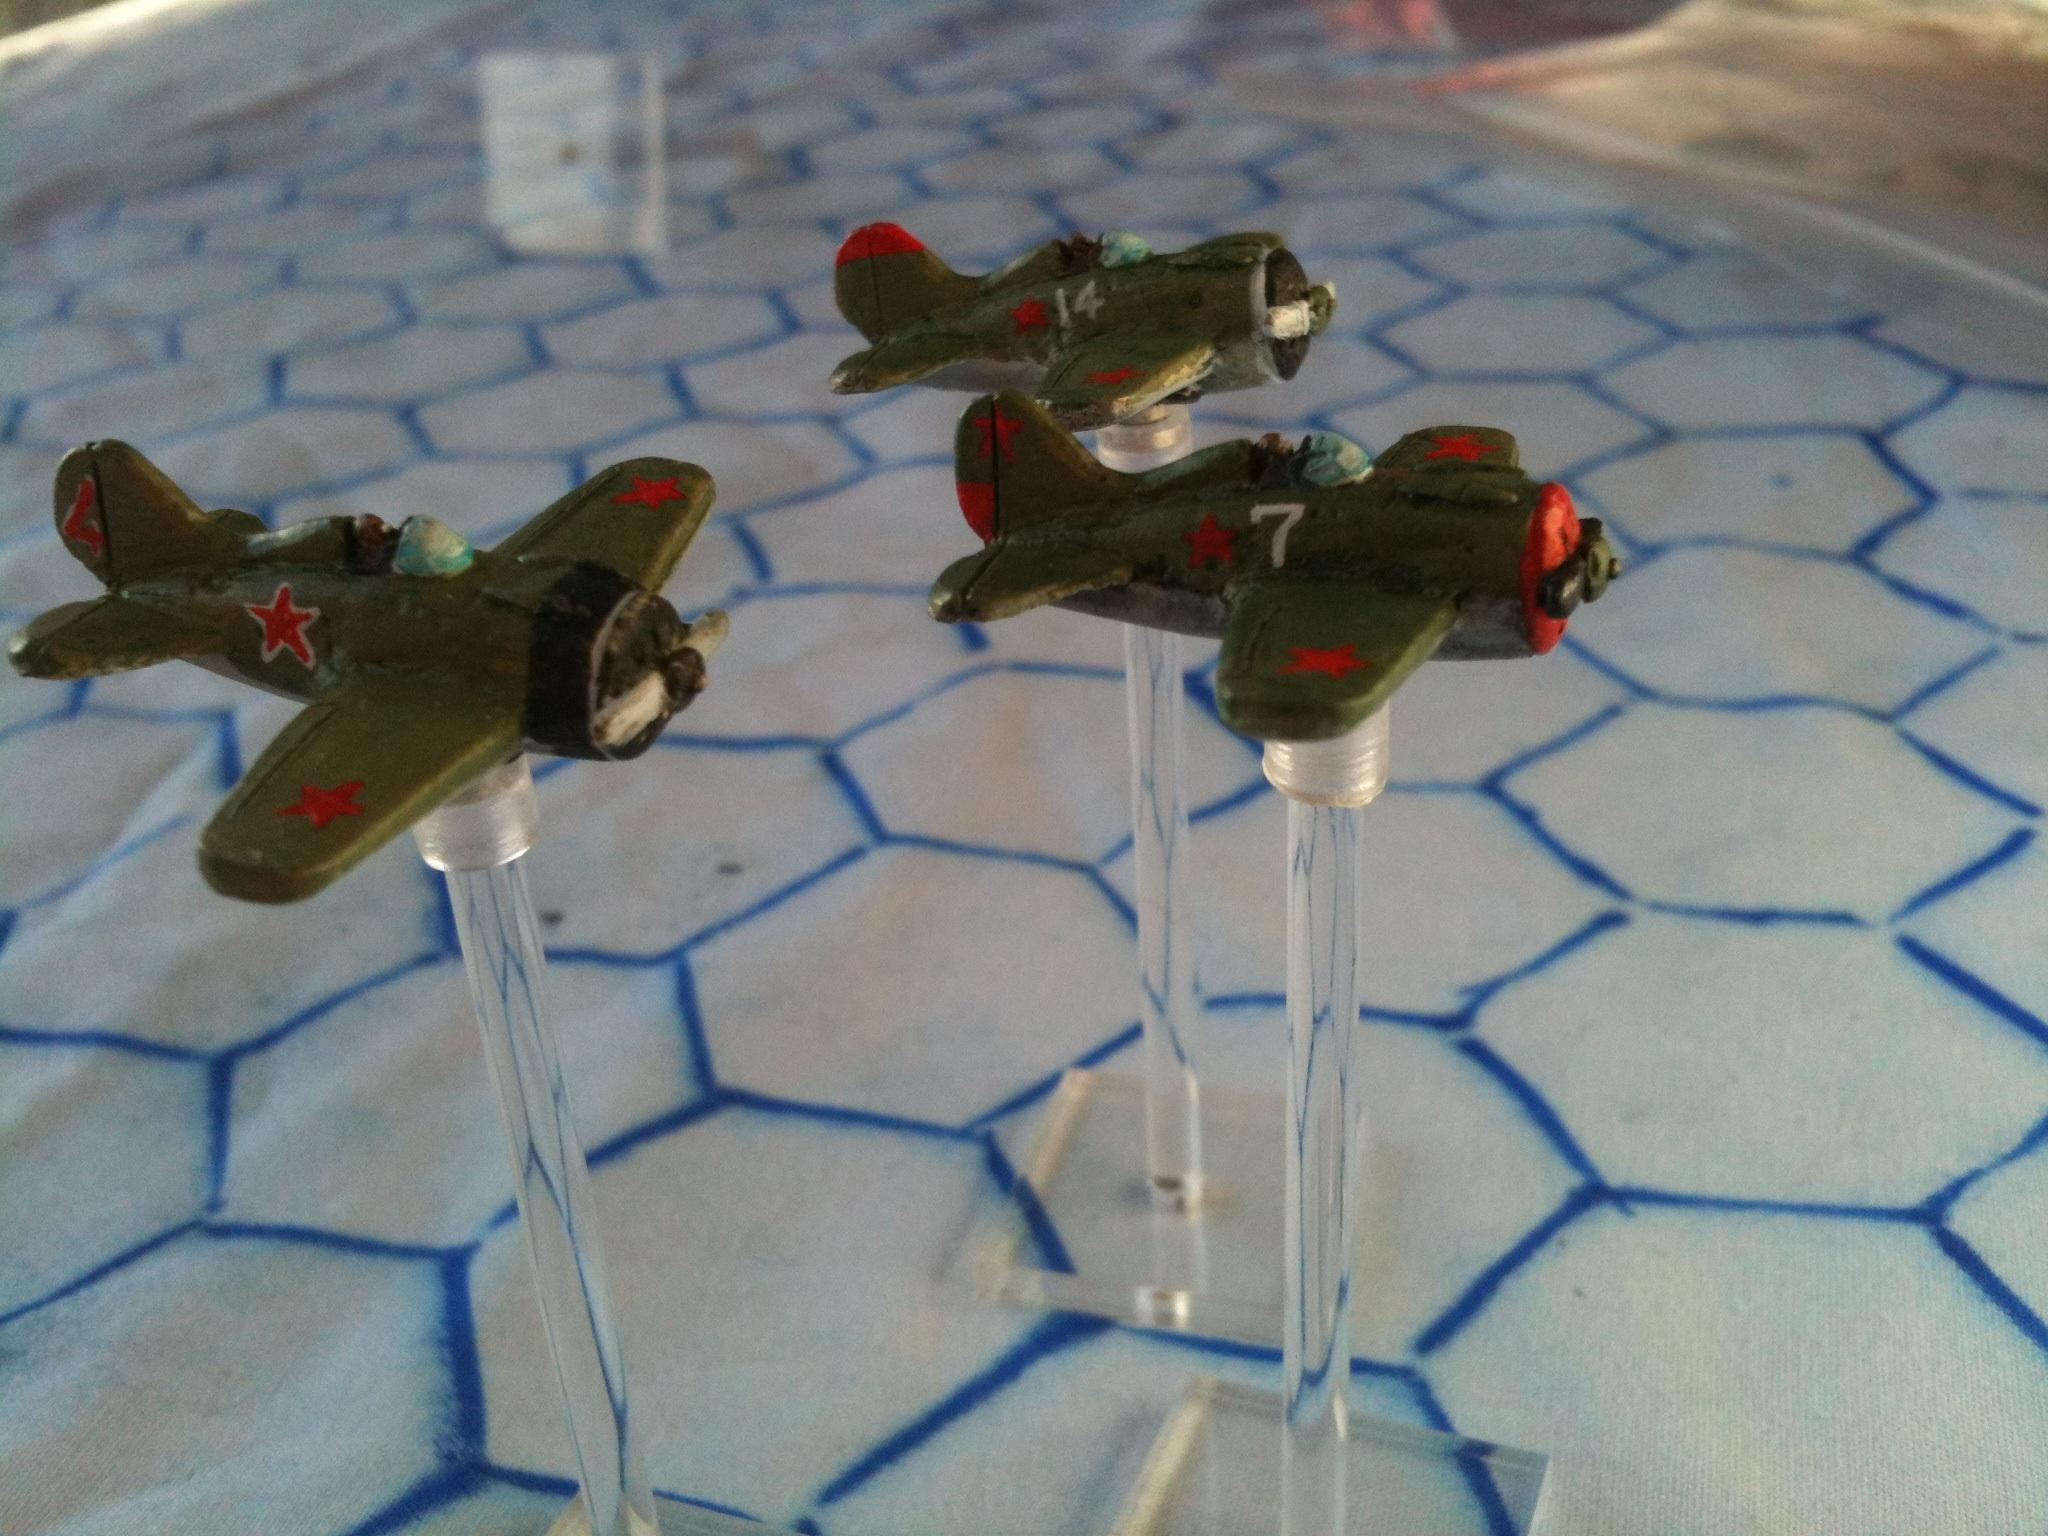 1:300, 1:300 Scale, 6mm, 6mm Scale, Air Combat, Airborne, Aircraft, Airplane, Aviation, Check Your 6!, Finland, Fliers, French, Germans, I-16, Imperial Japan, Italian, Luftwaffe, Planes, Republic Of China, Soviet, World War 2